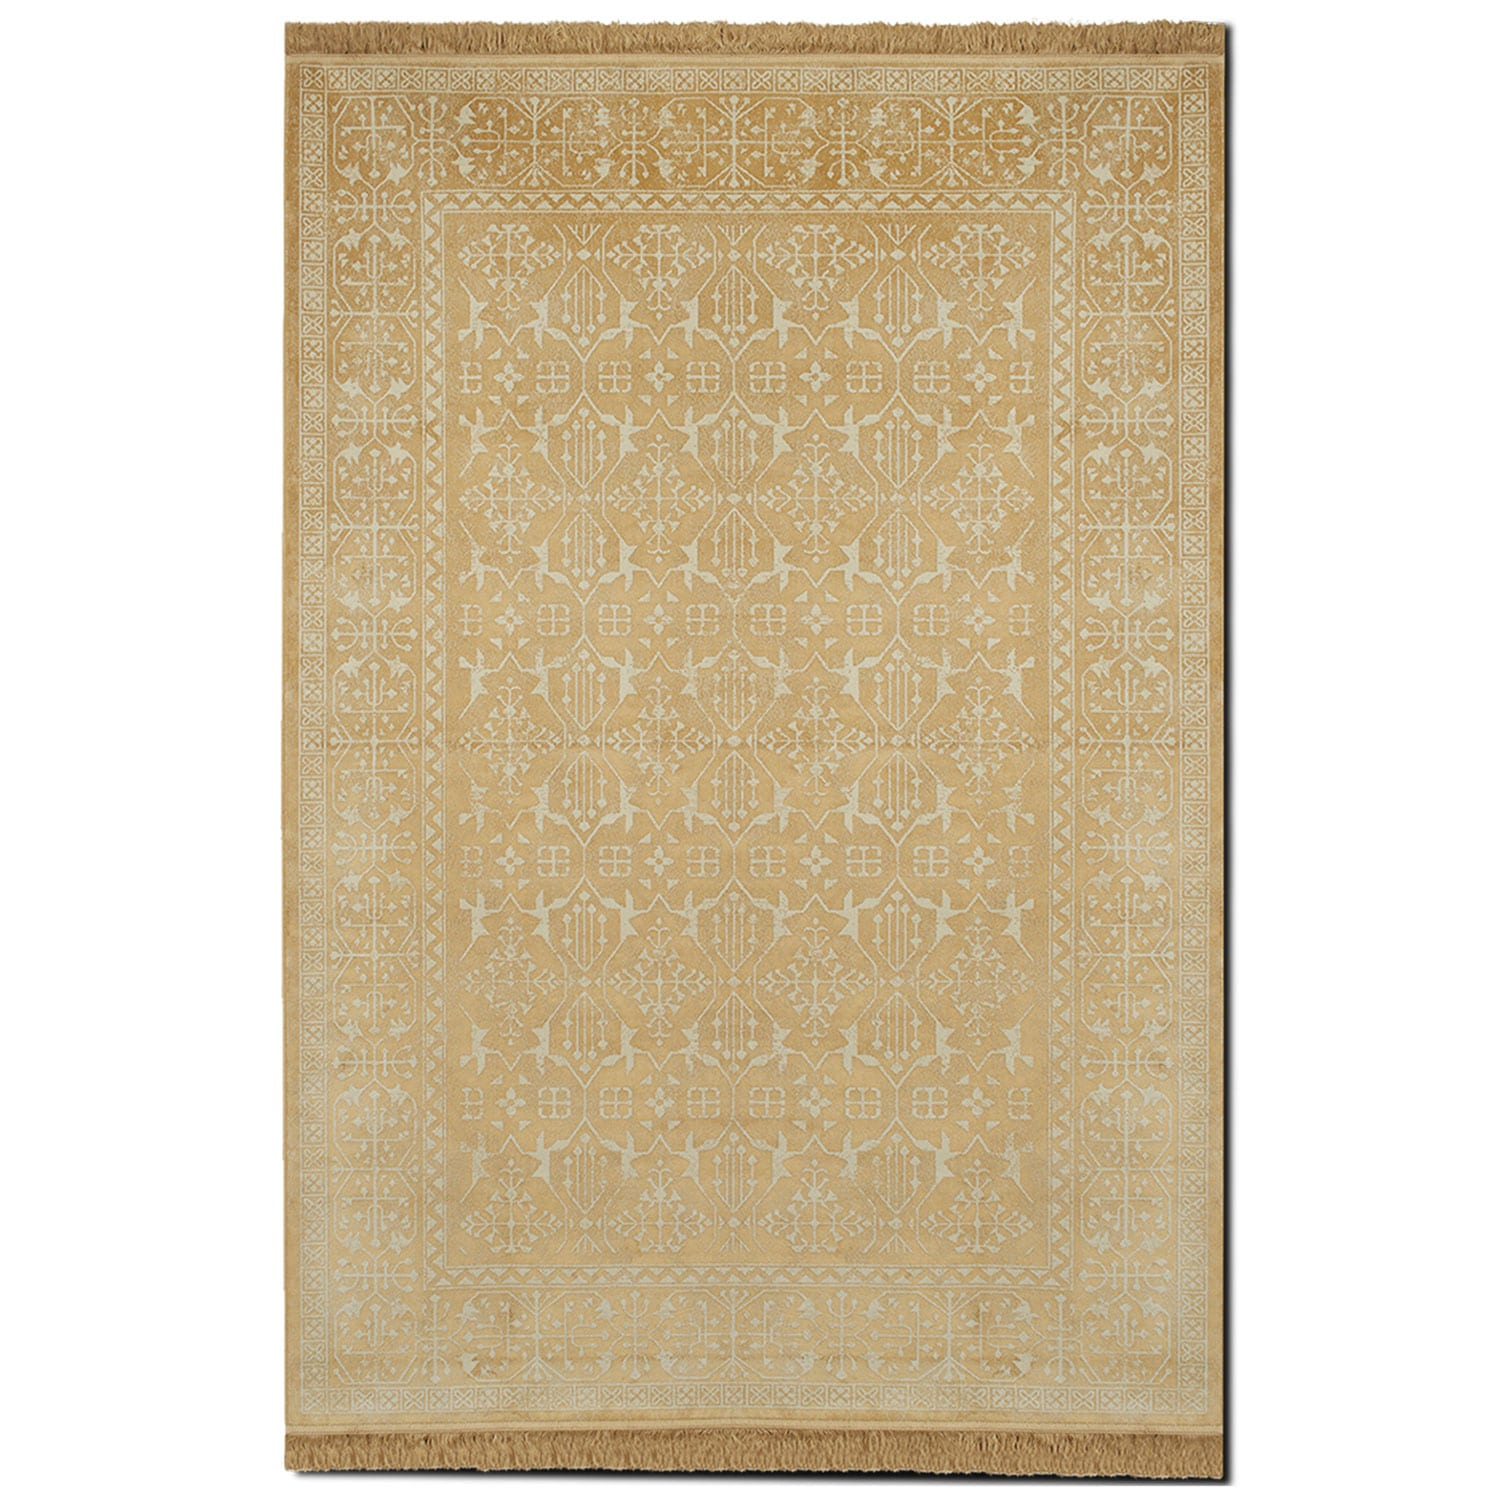 sonoma 5 39 x 8 39 area rug yellow and white value city furniture. Black Bedroom Furniture Sets. Home Design Ideas